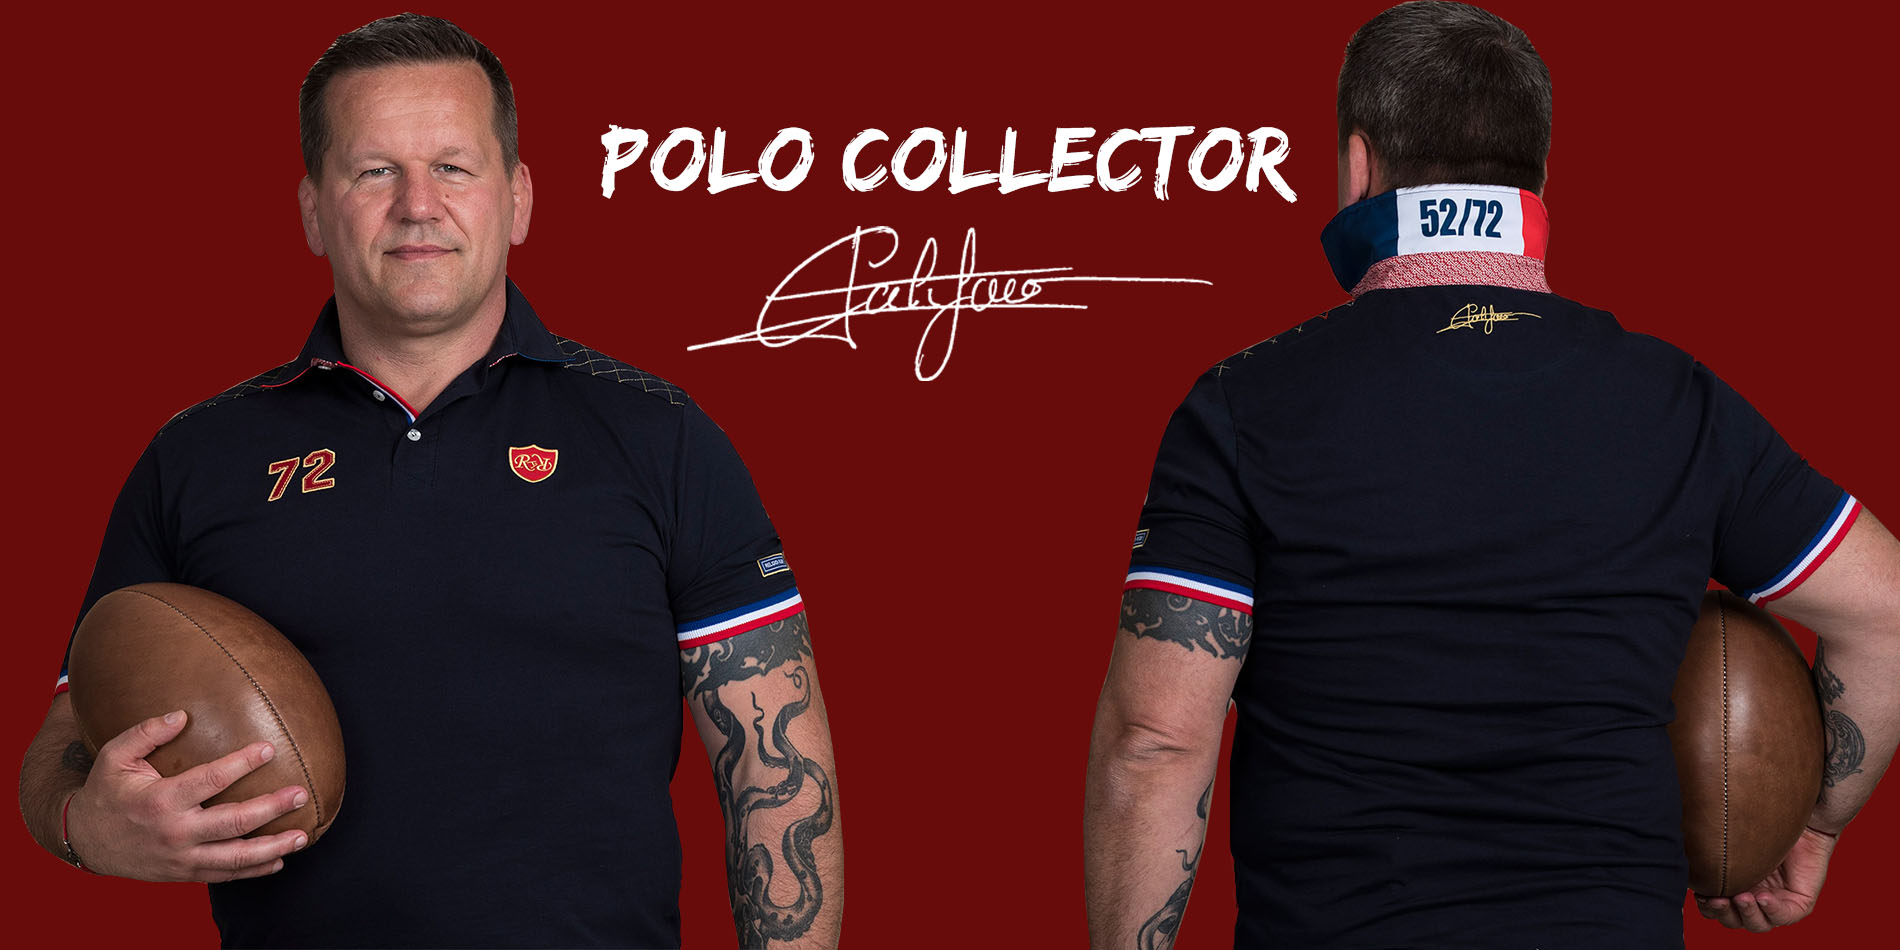 Polo de Rugby Collector Califano